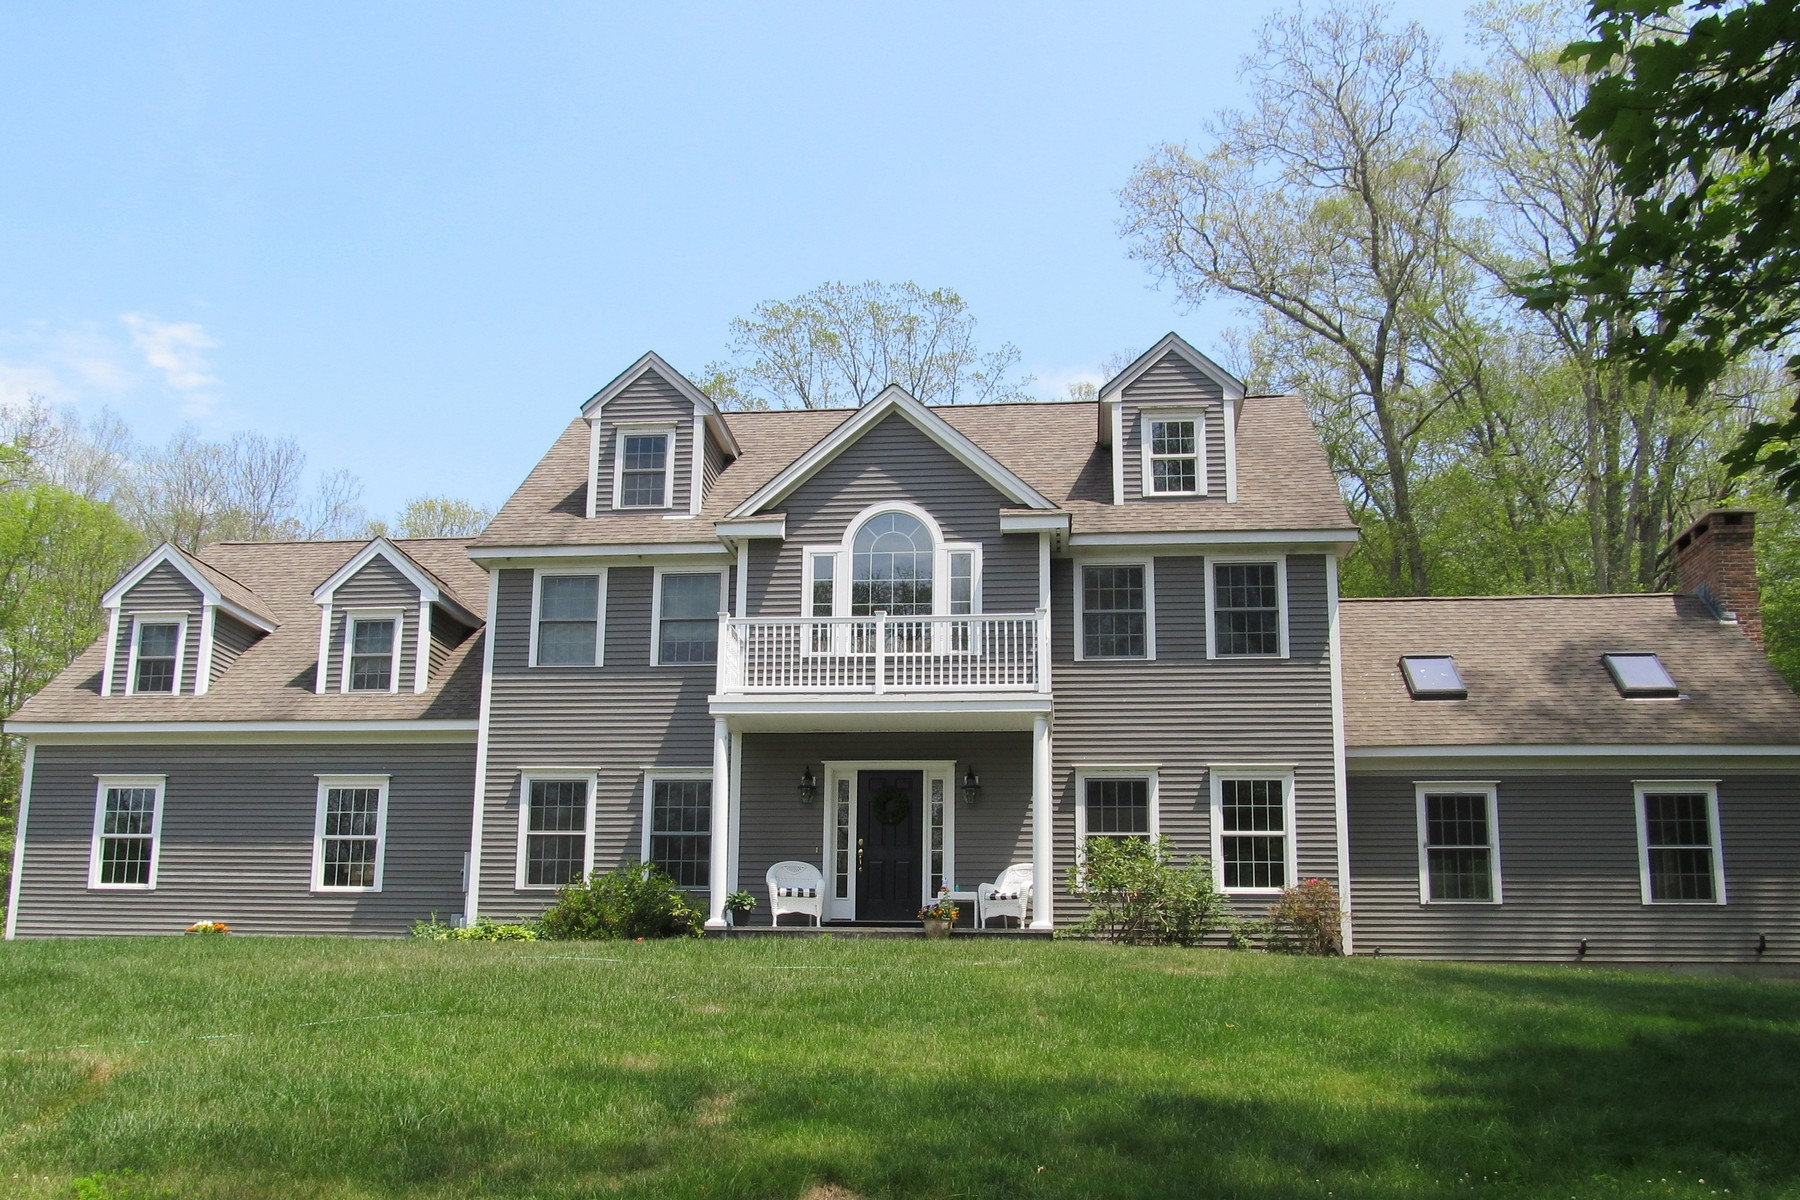 Single Family Home for Sale at Spacious Colonial Home 381 Hamburg Road Lyme, Connecticut, 06371 United States